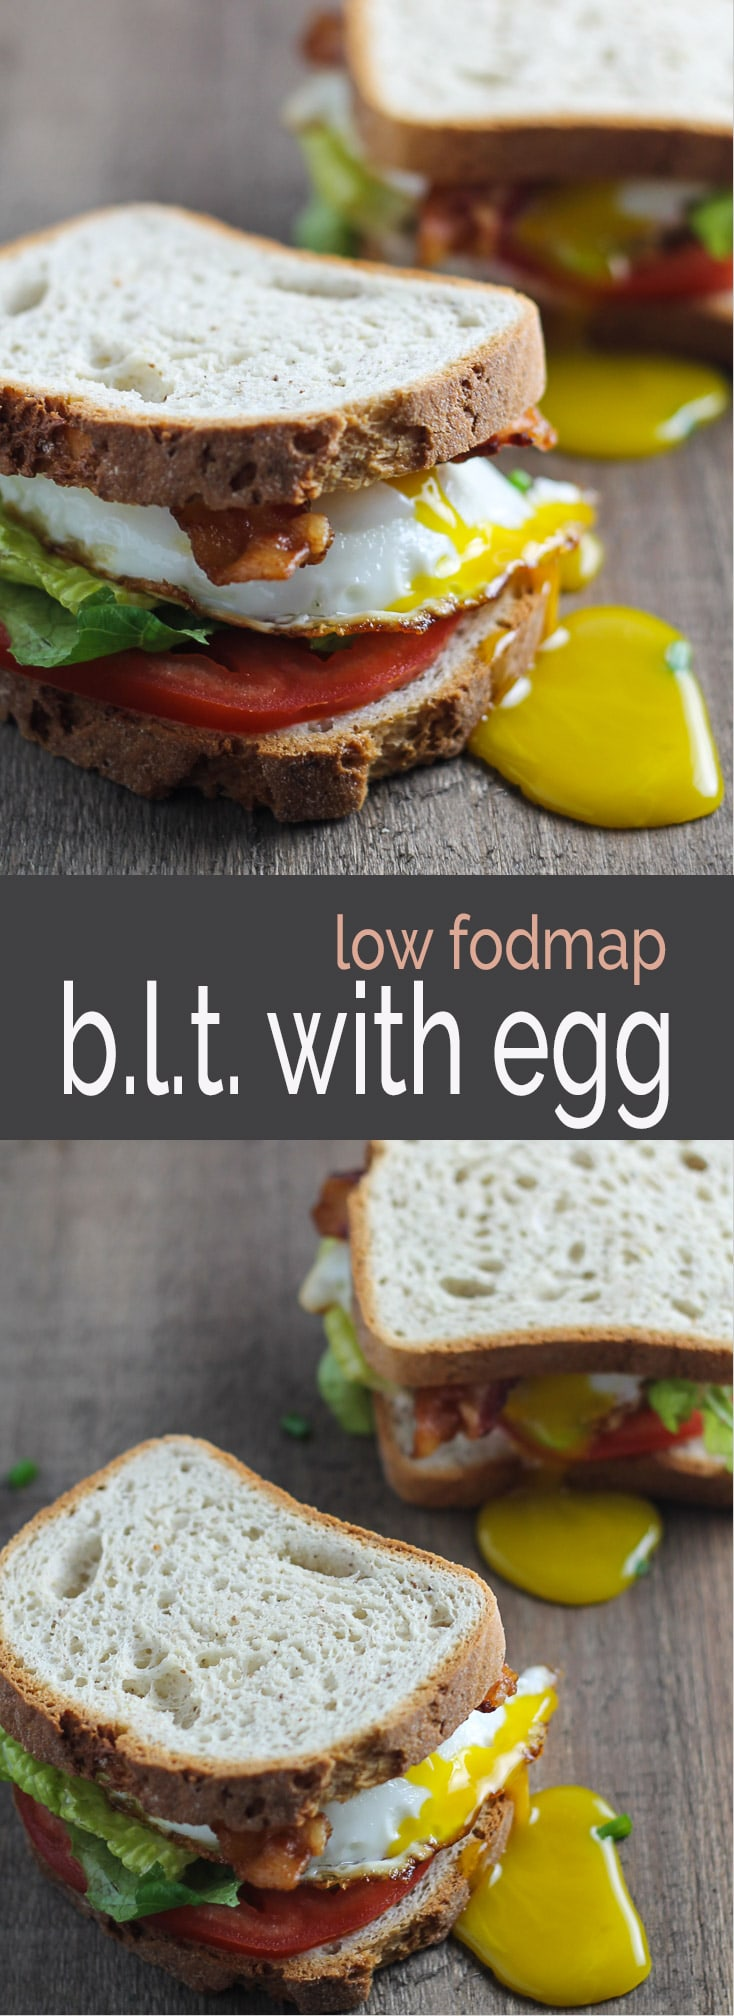 Need a quick and easy meal? This low fodmap BLT with egg is your ticket! Delicious and gluten free, this sandwich is one of my go-to's, anytime of the day!